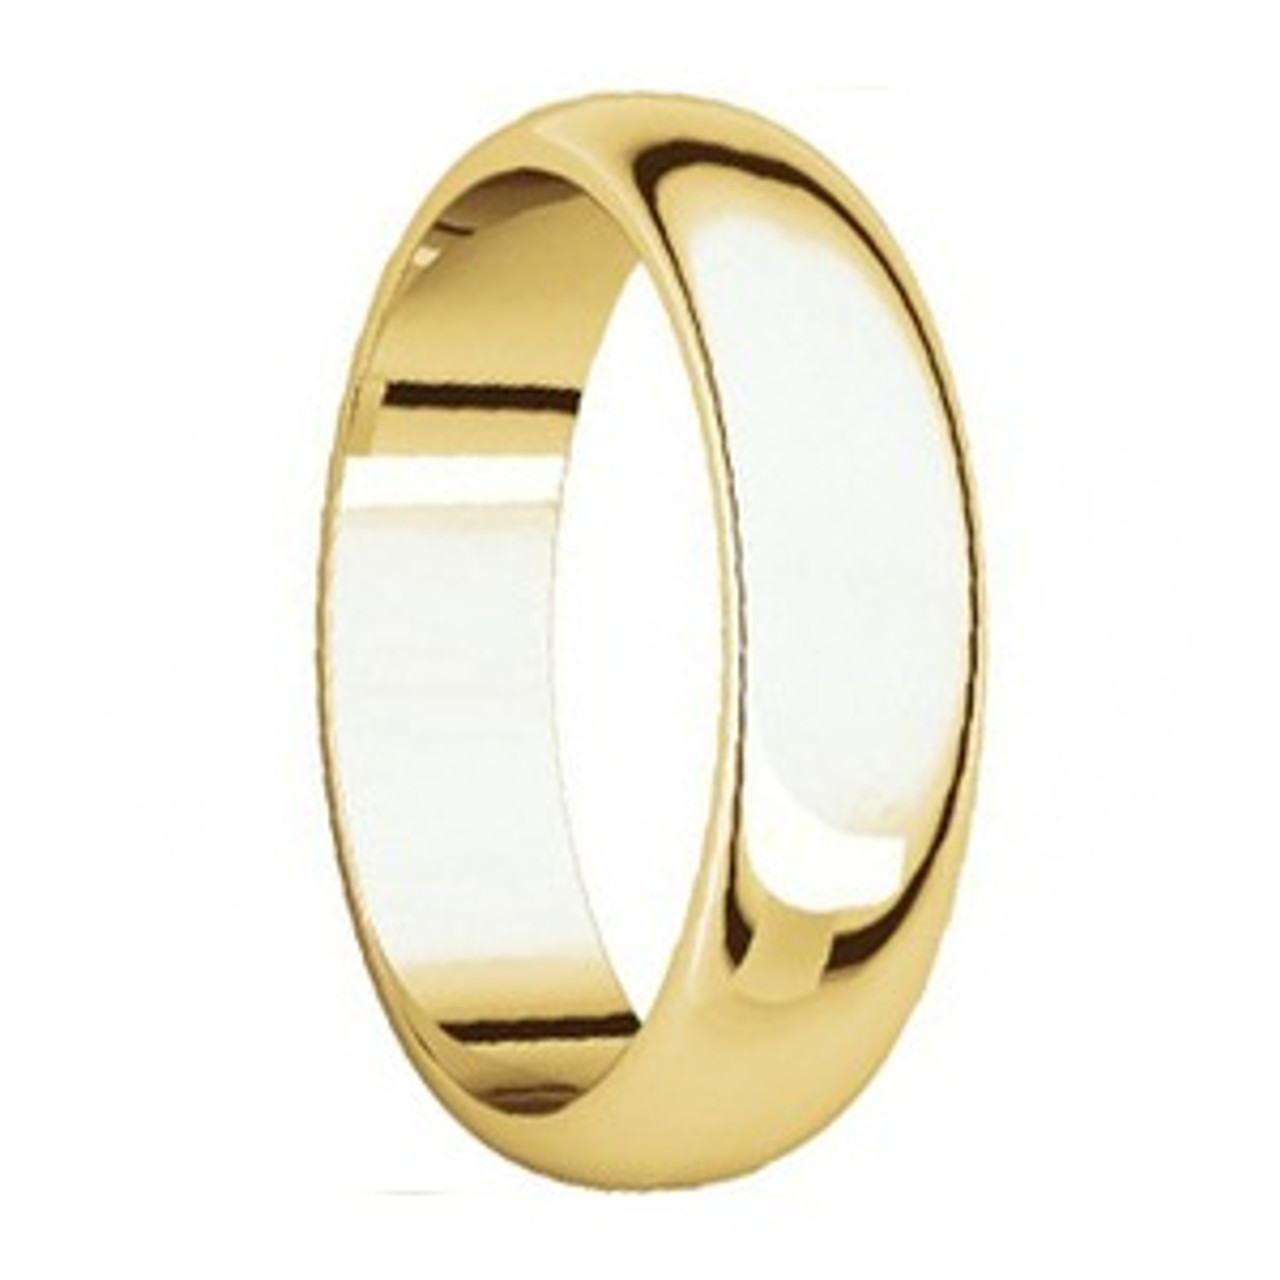 6 Mm Mens Wedding Rings In 10kt Yellow Gold Handcrafted Lander 60g